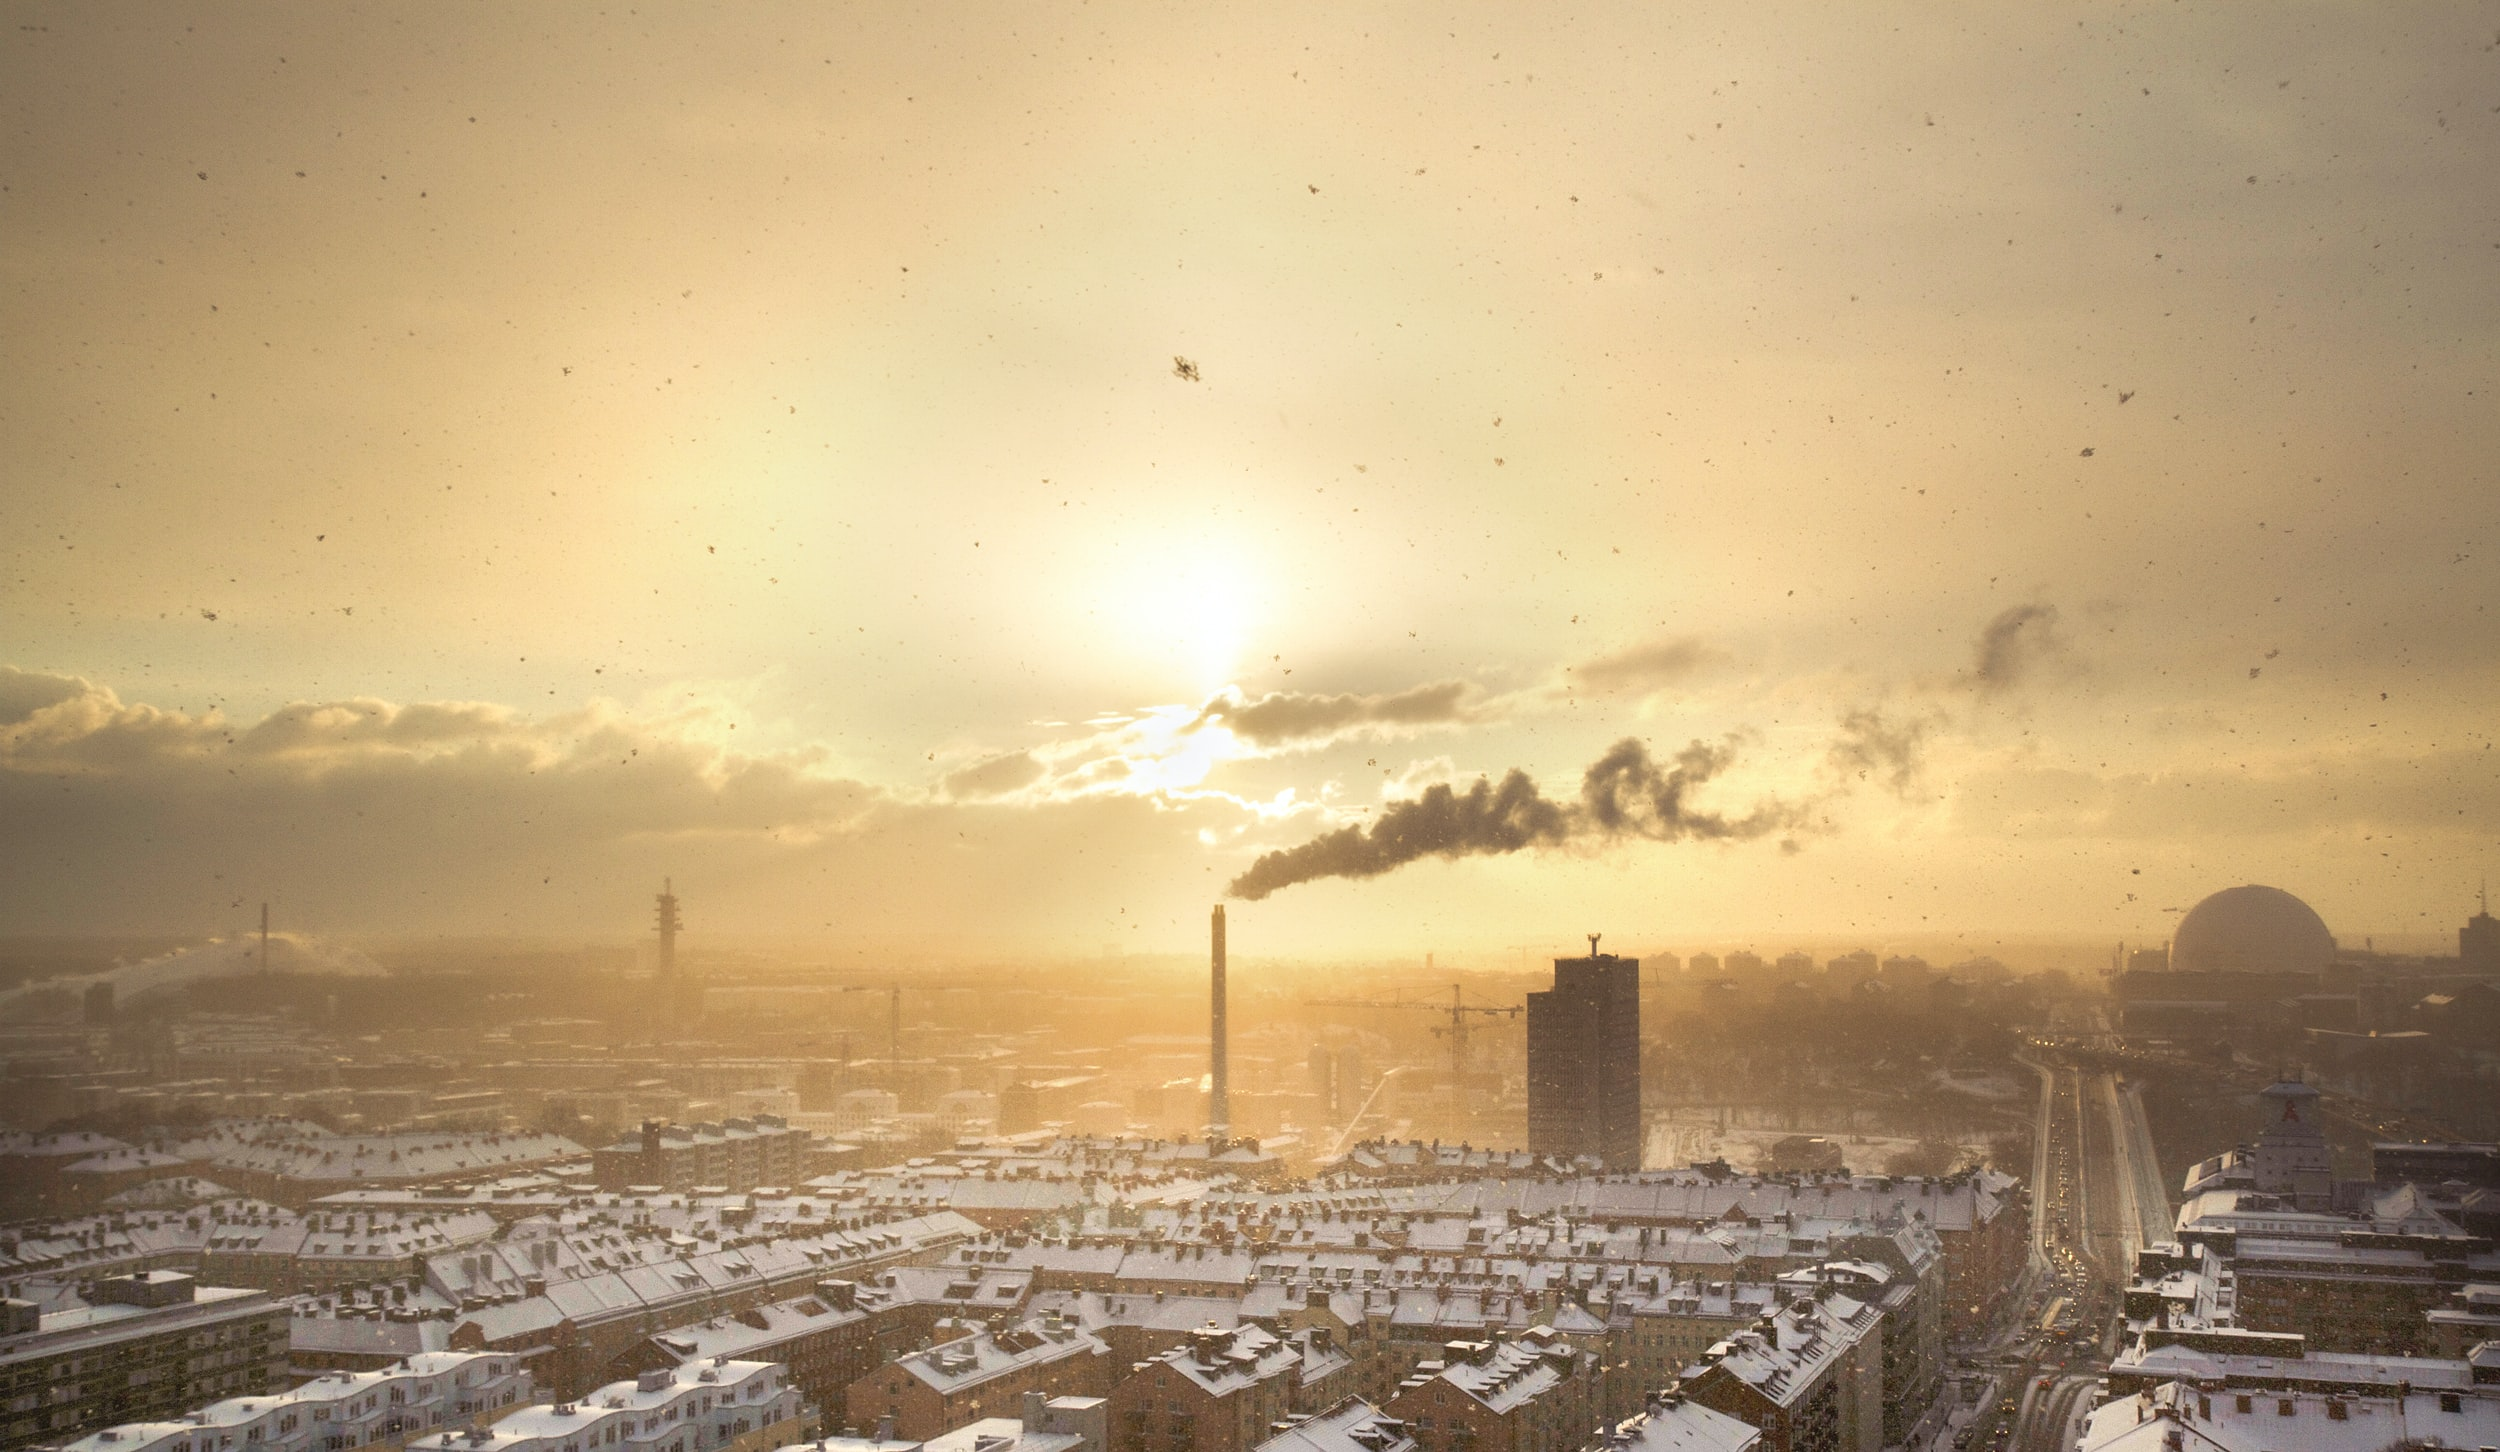 An industrial cityscape of a town filled with factories and air pollution at sunset